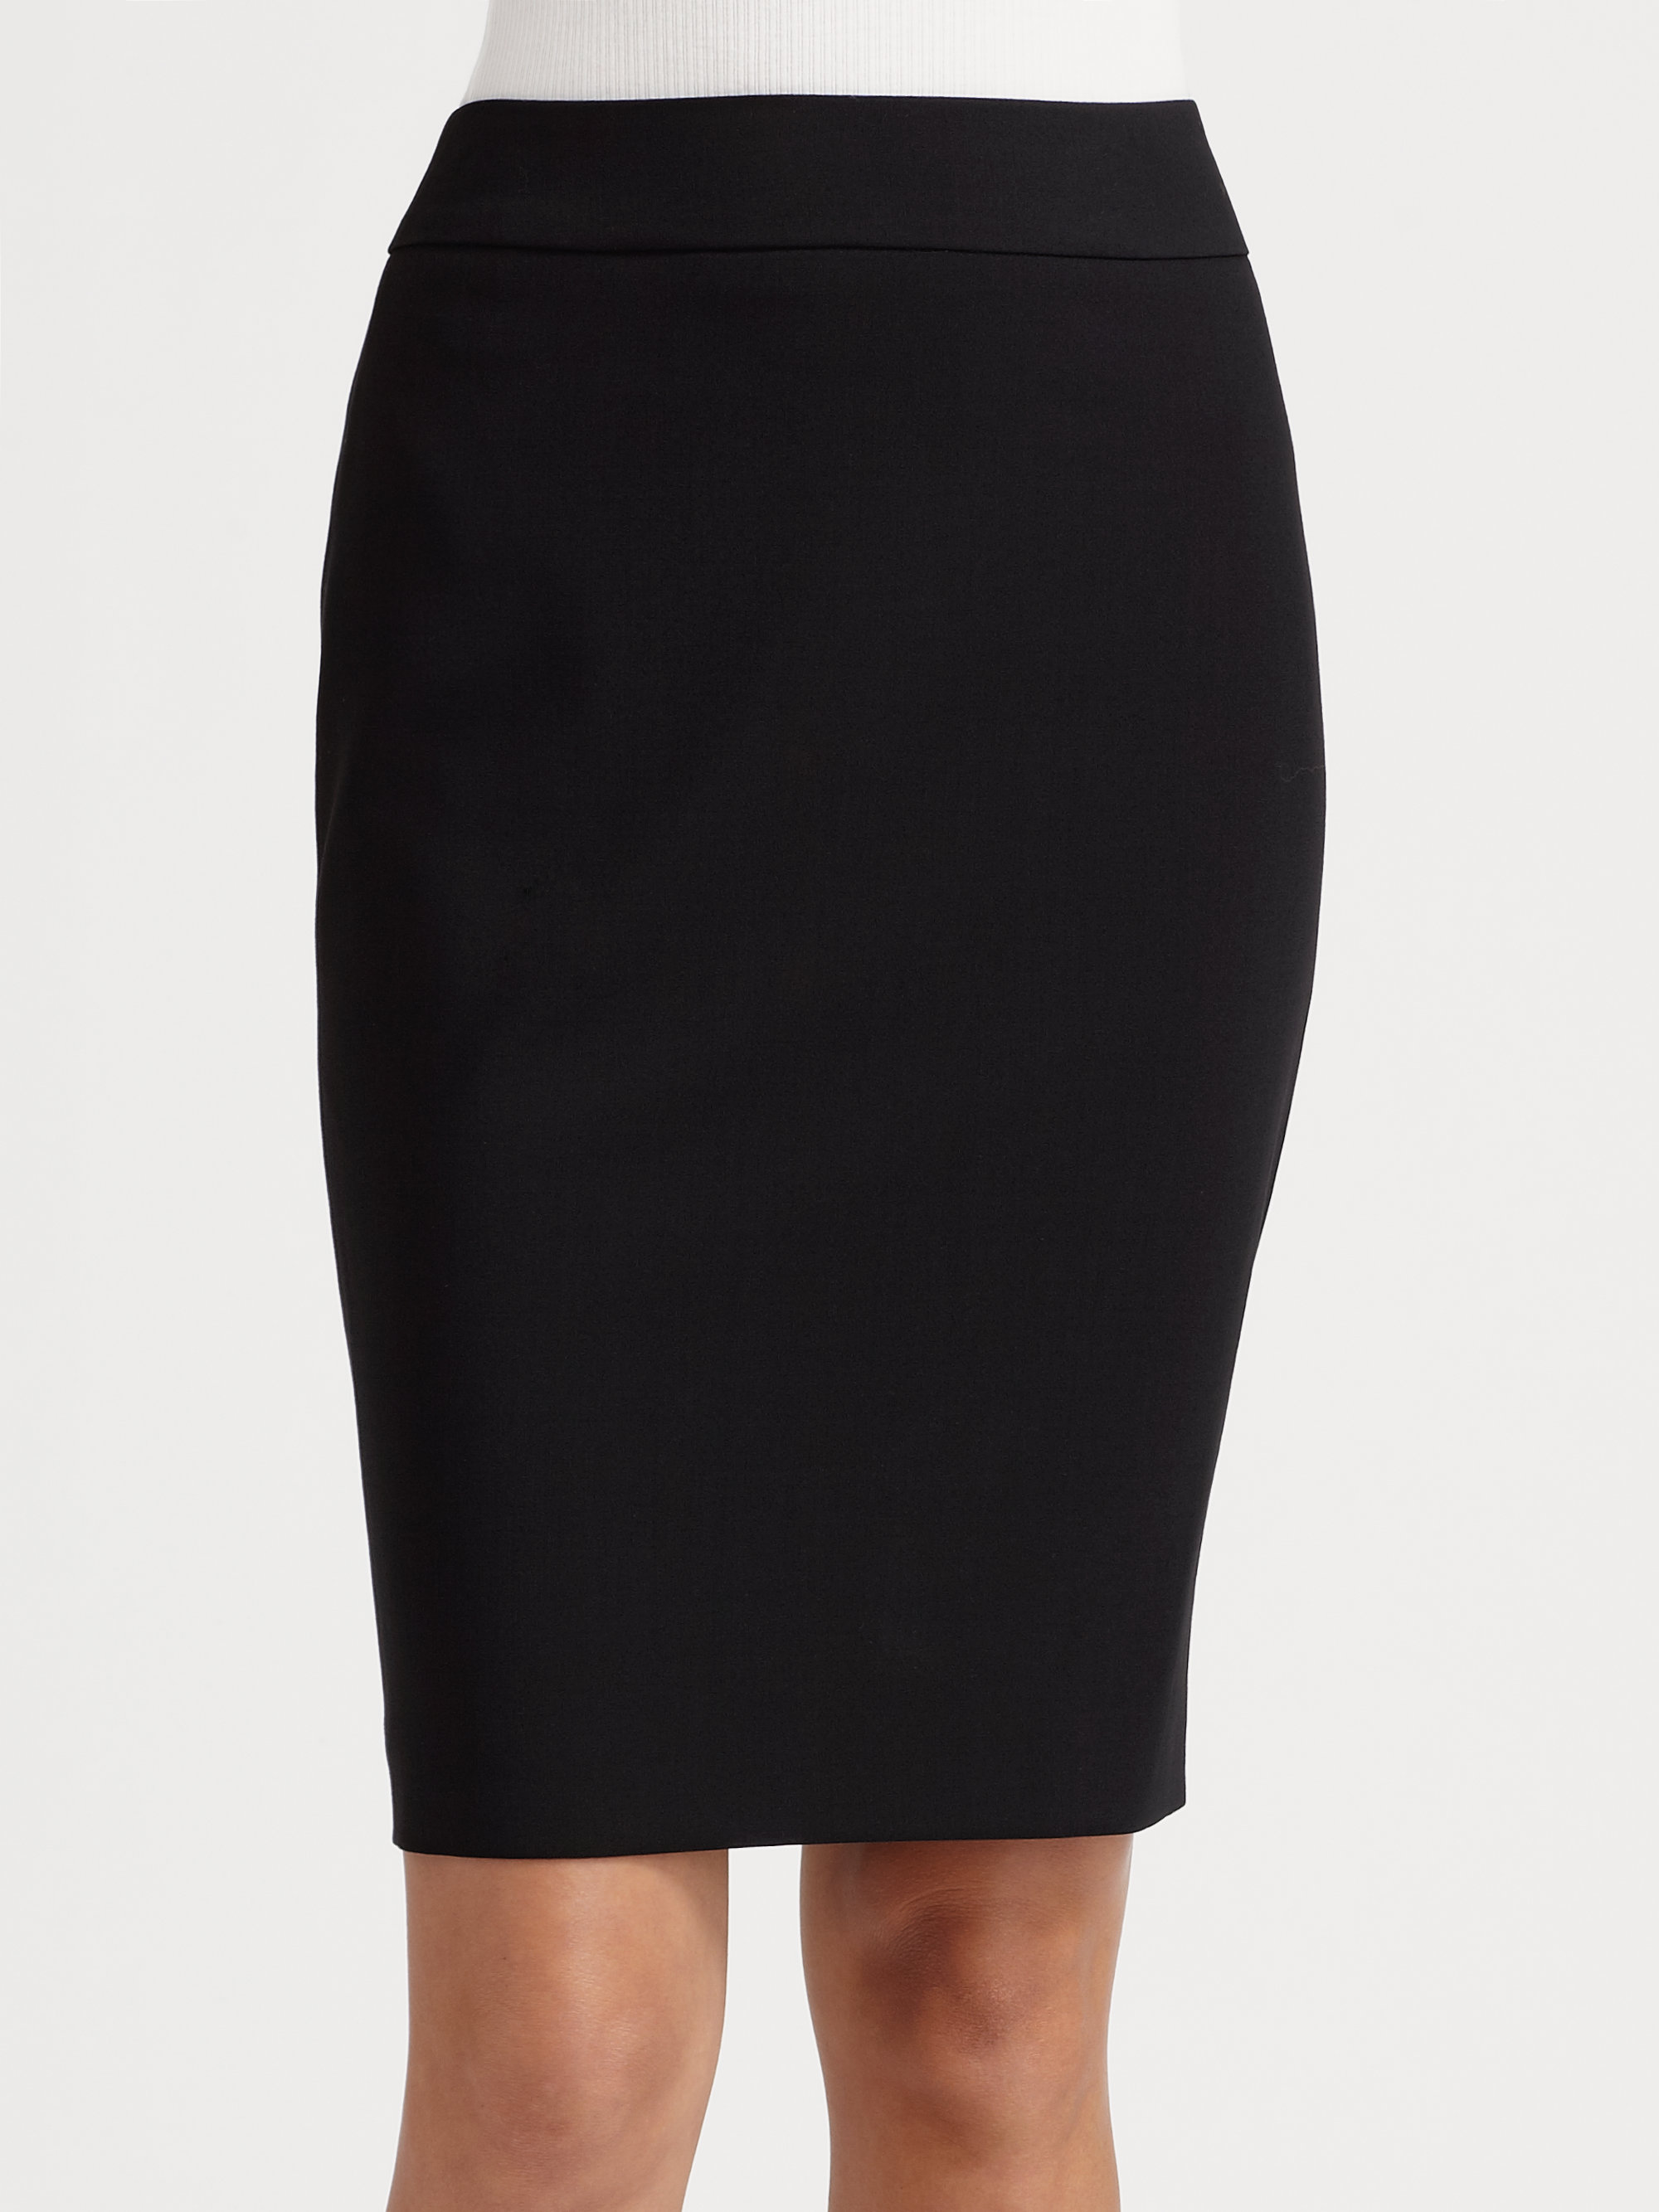 Designer skirts for women on sale | Shop skirt styles for all body types & occasions from high-waisted to A-line. Shop luxury ladies fashion at THE OUTNET.